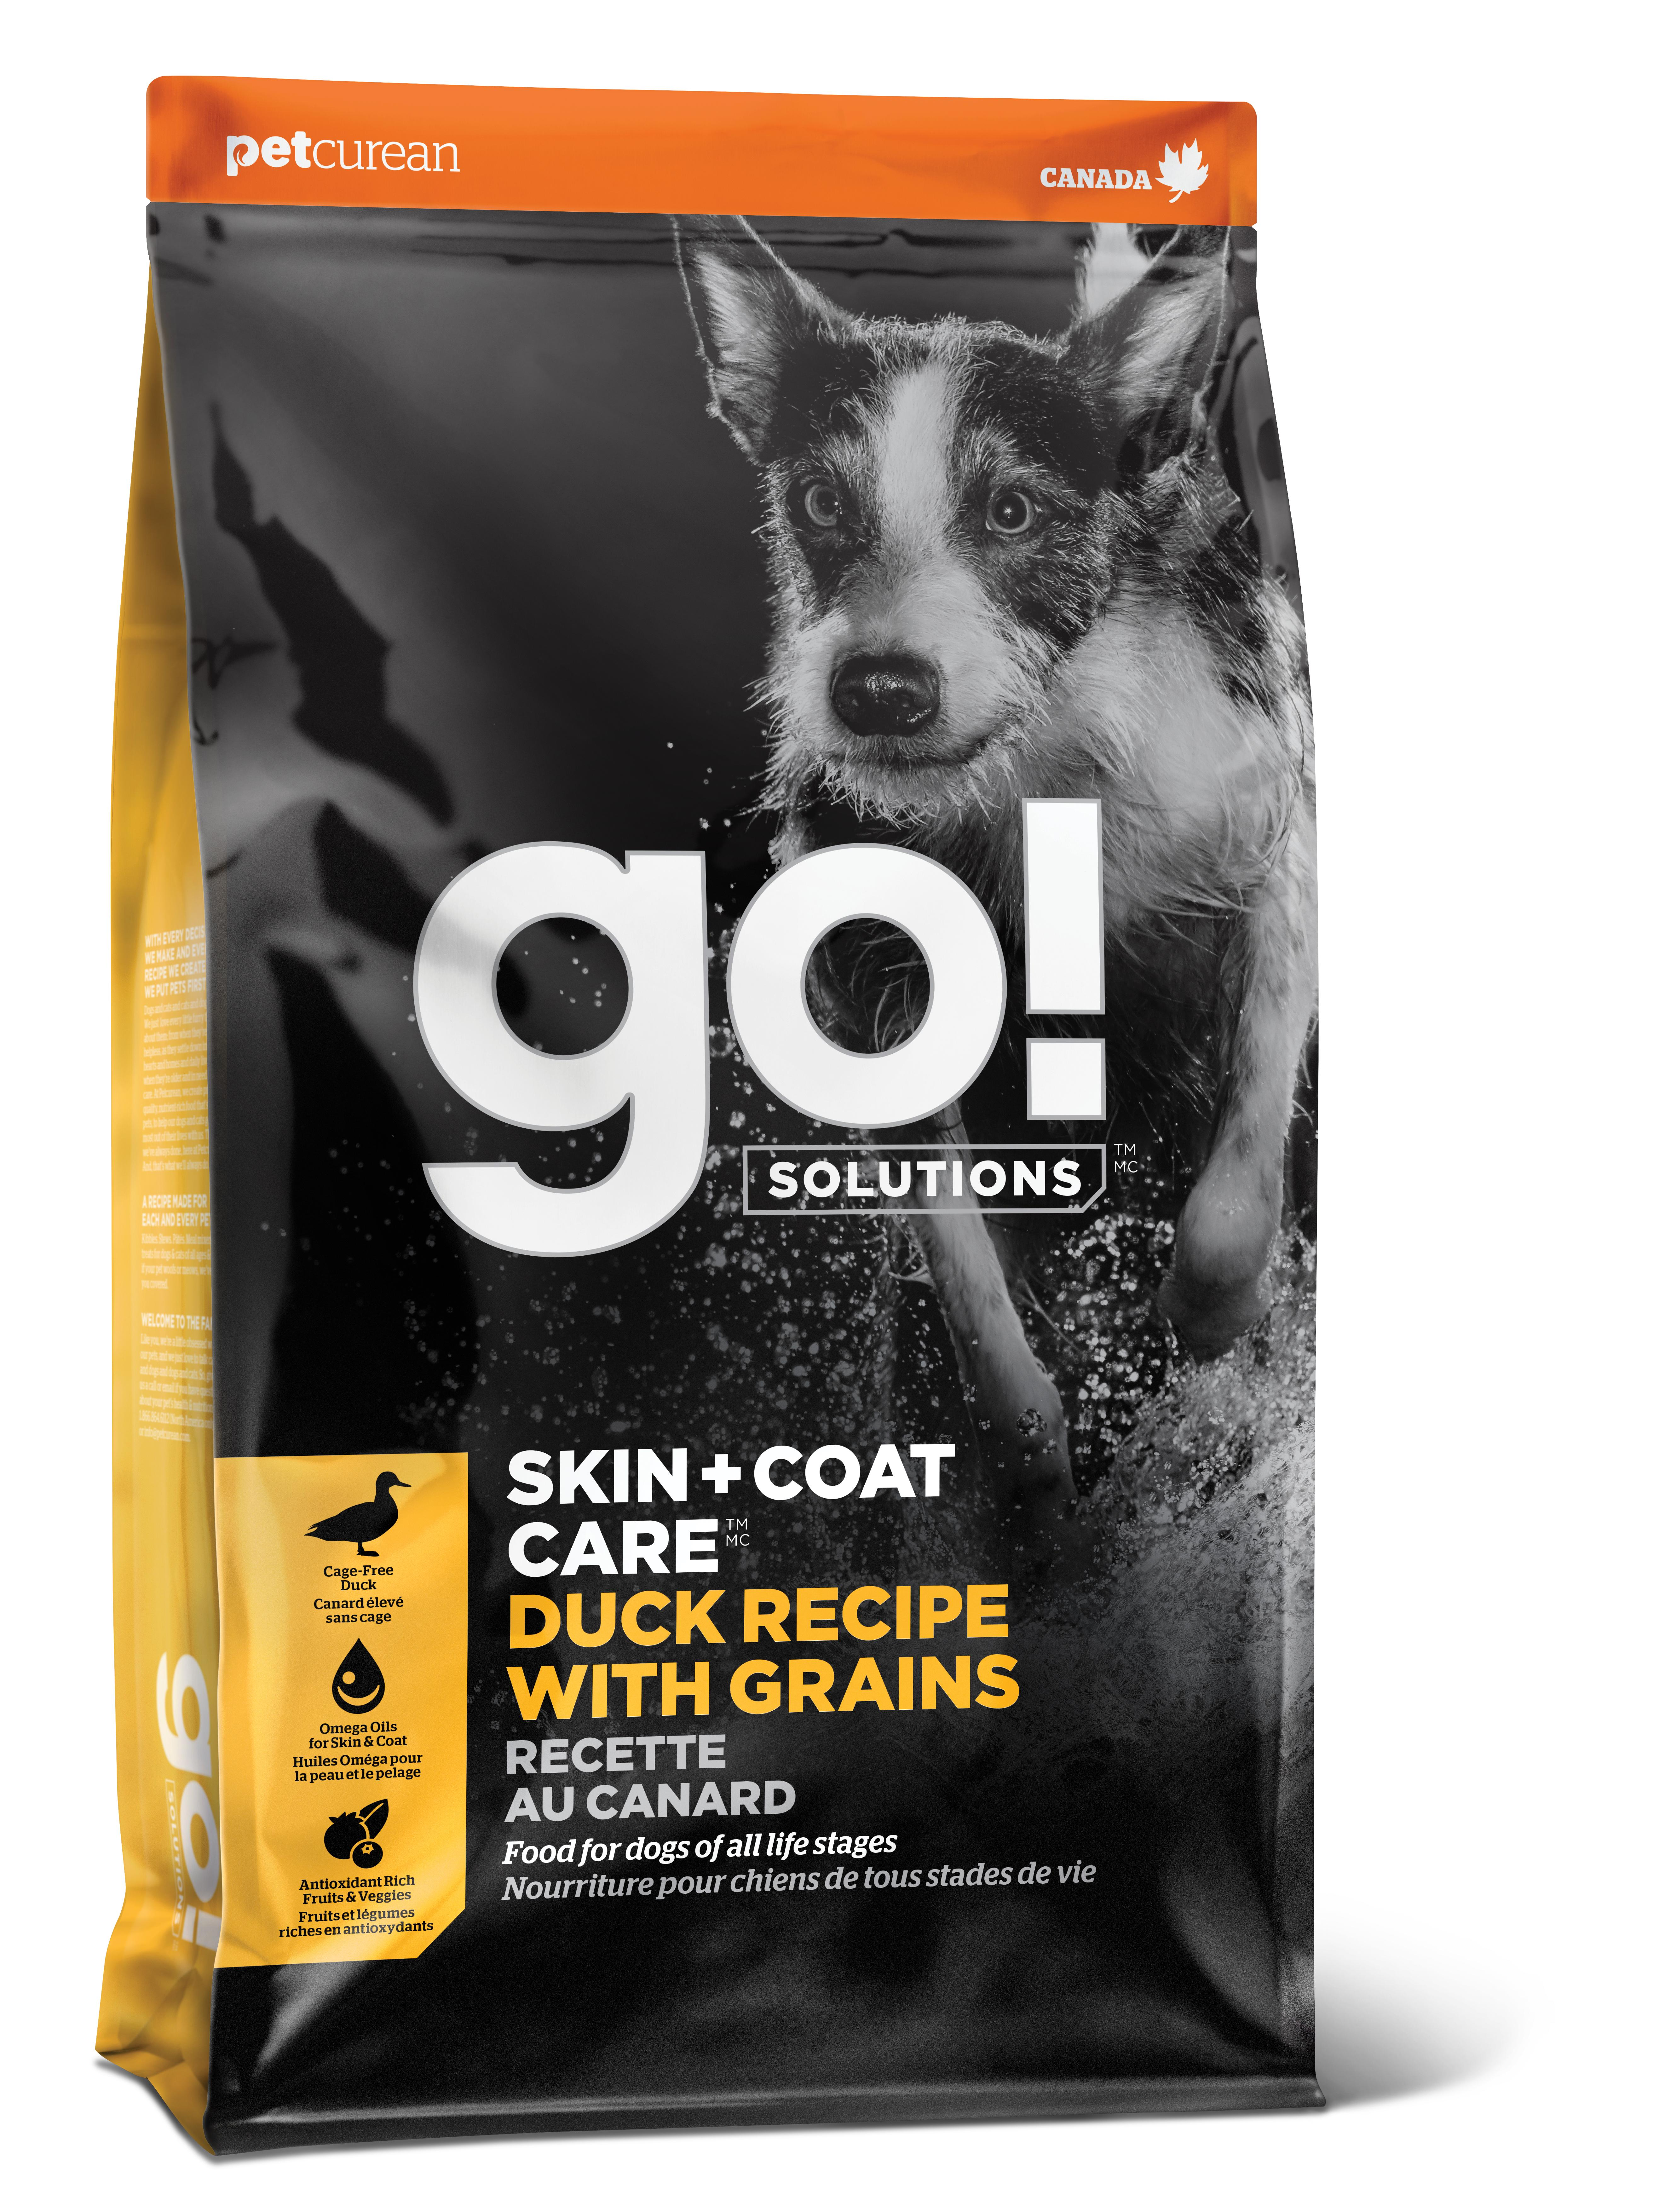 Go! Solutions Skin + Coat Care Duck with Grains Dry Dog Food Image